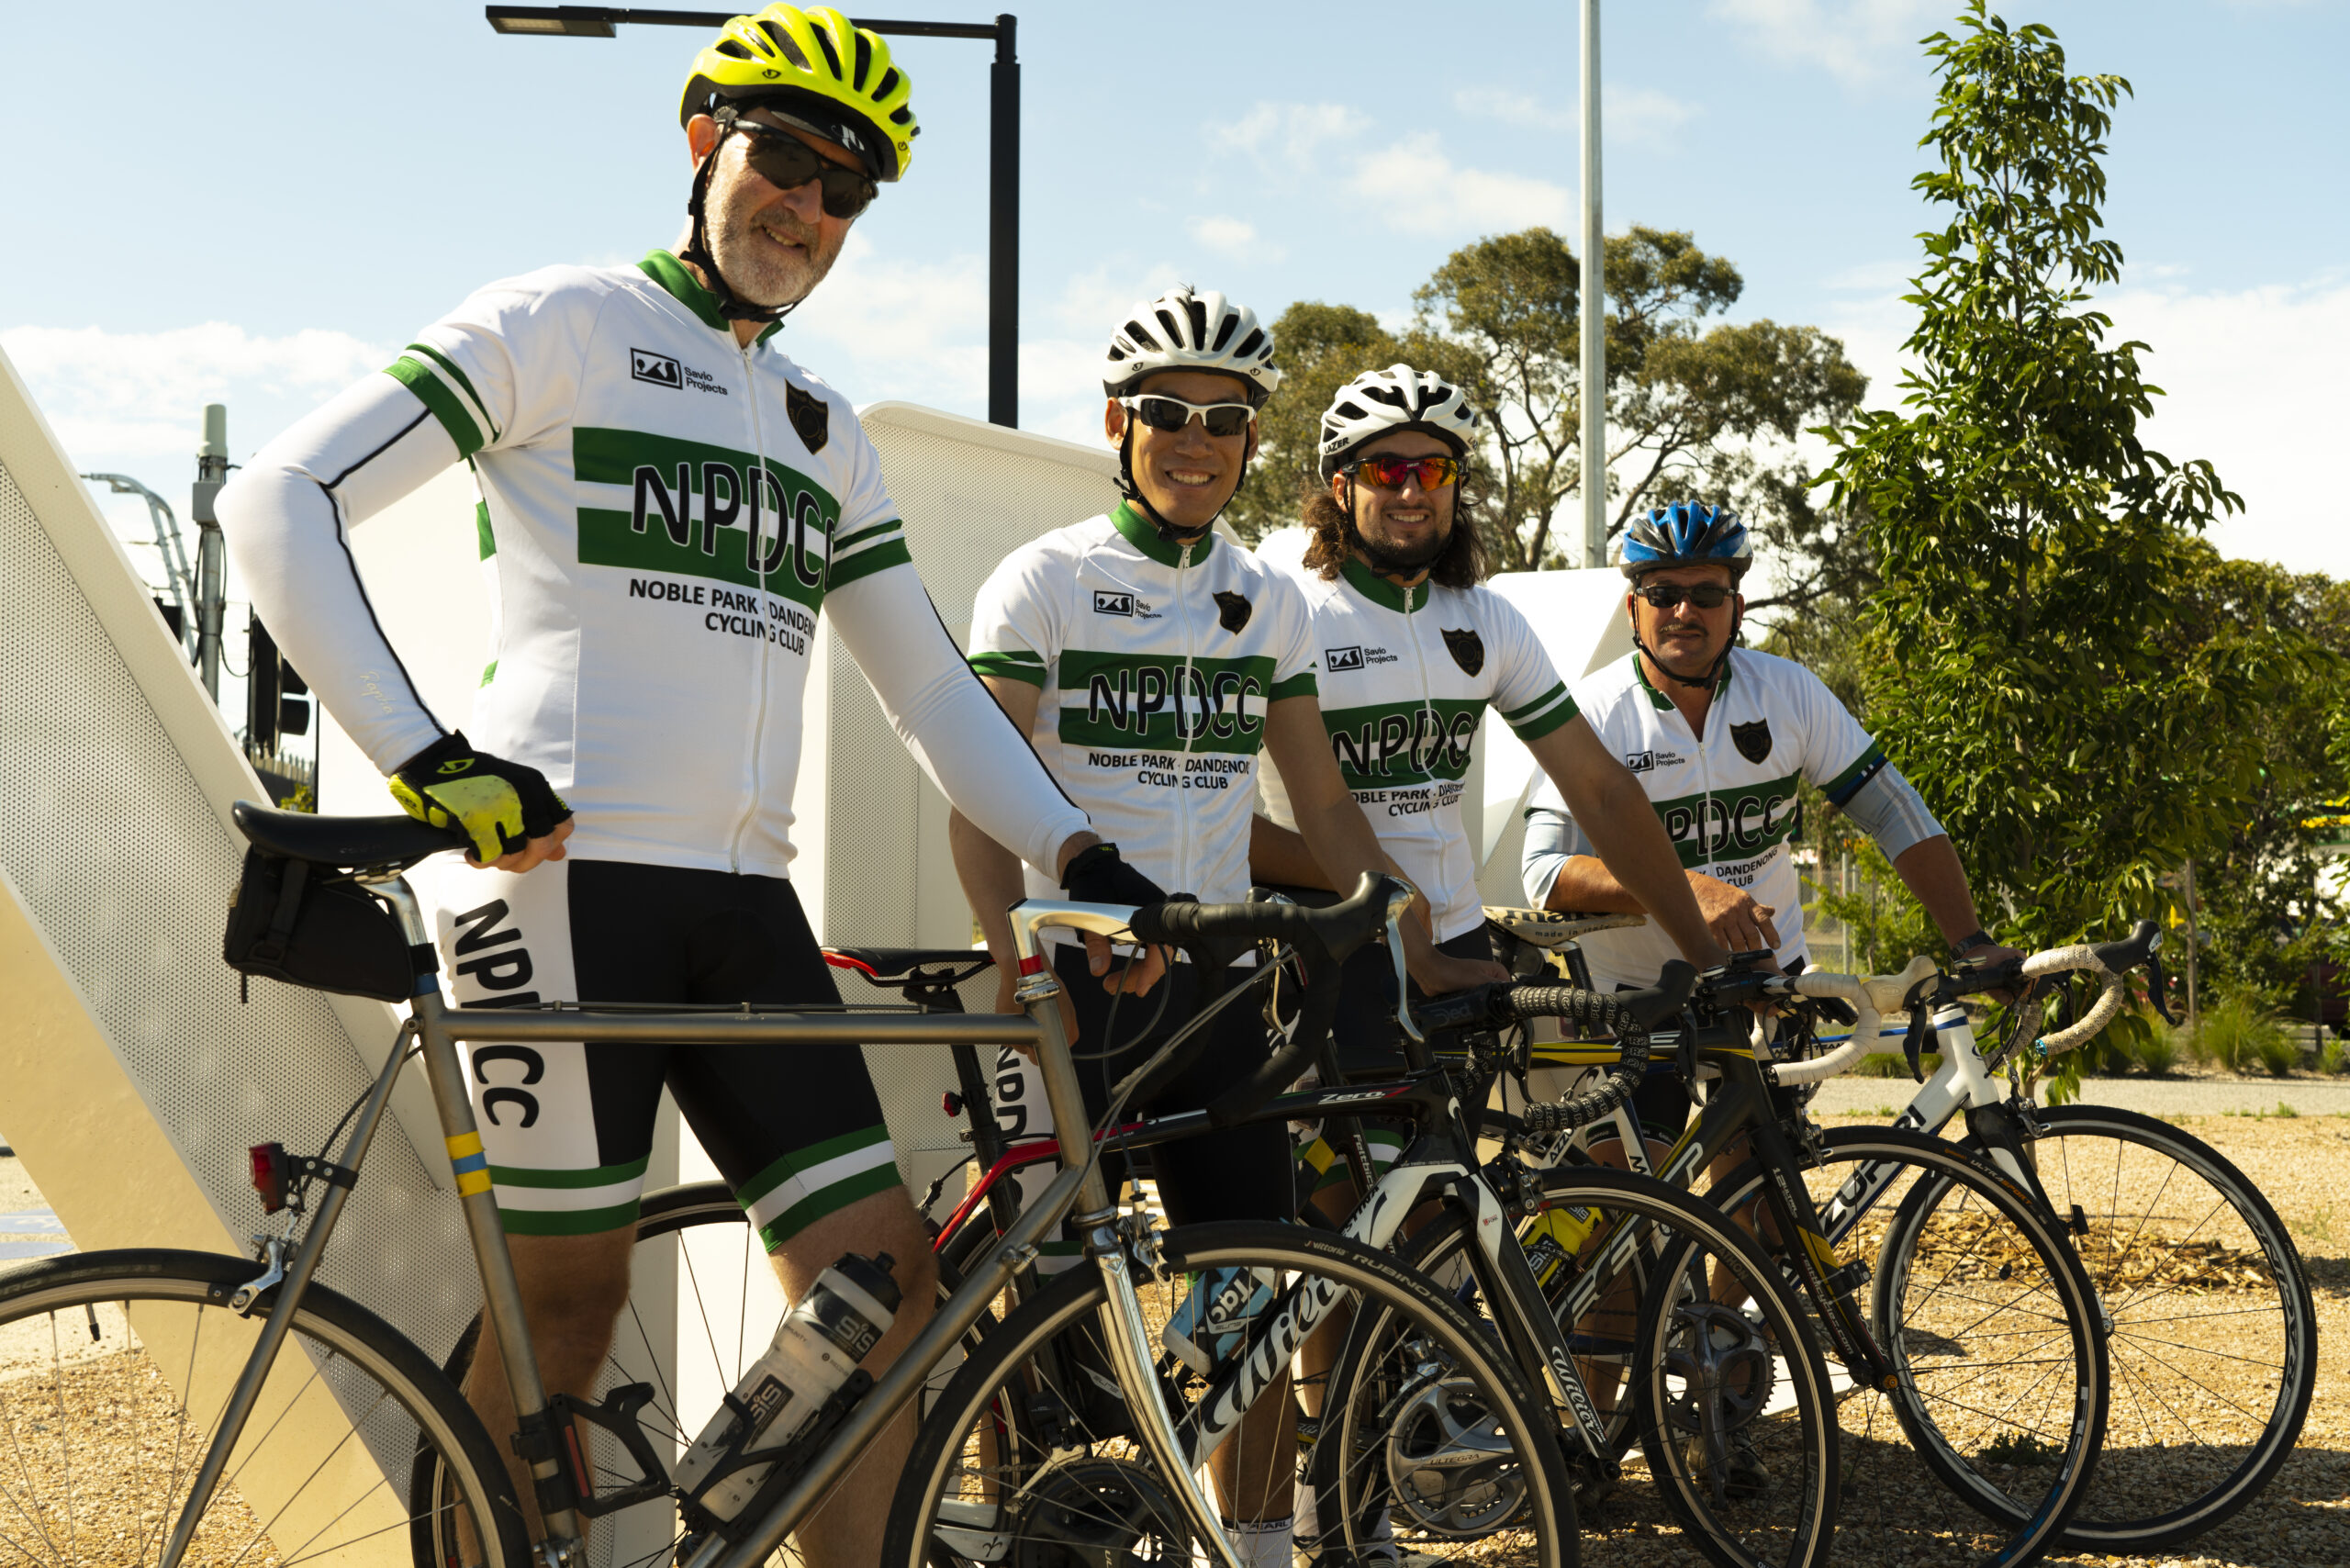 Noble Park Dandenong Cycling Club Team Kit